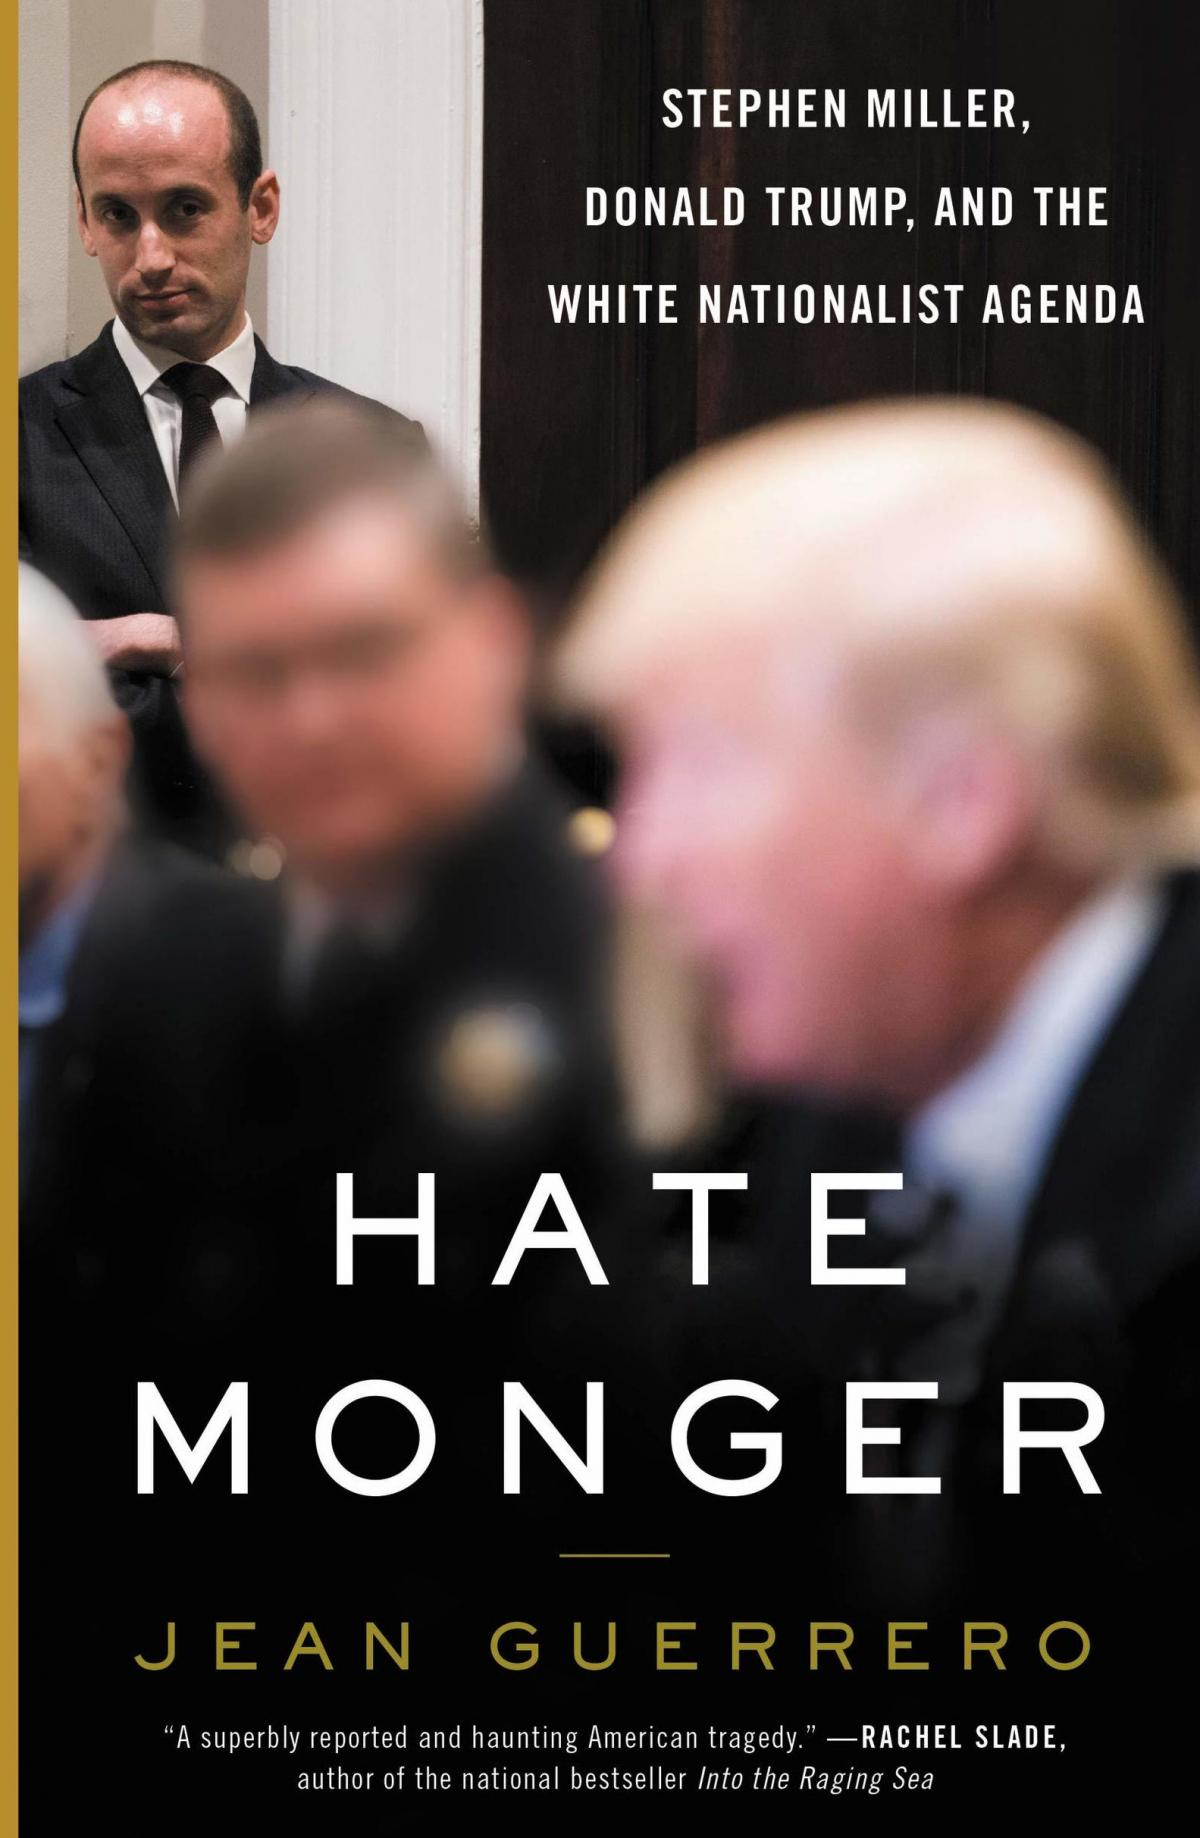 Hatemonger: Stephen Miller, Donald Trump, and the White Nationalist Agenda, by Jean Guerrero